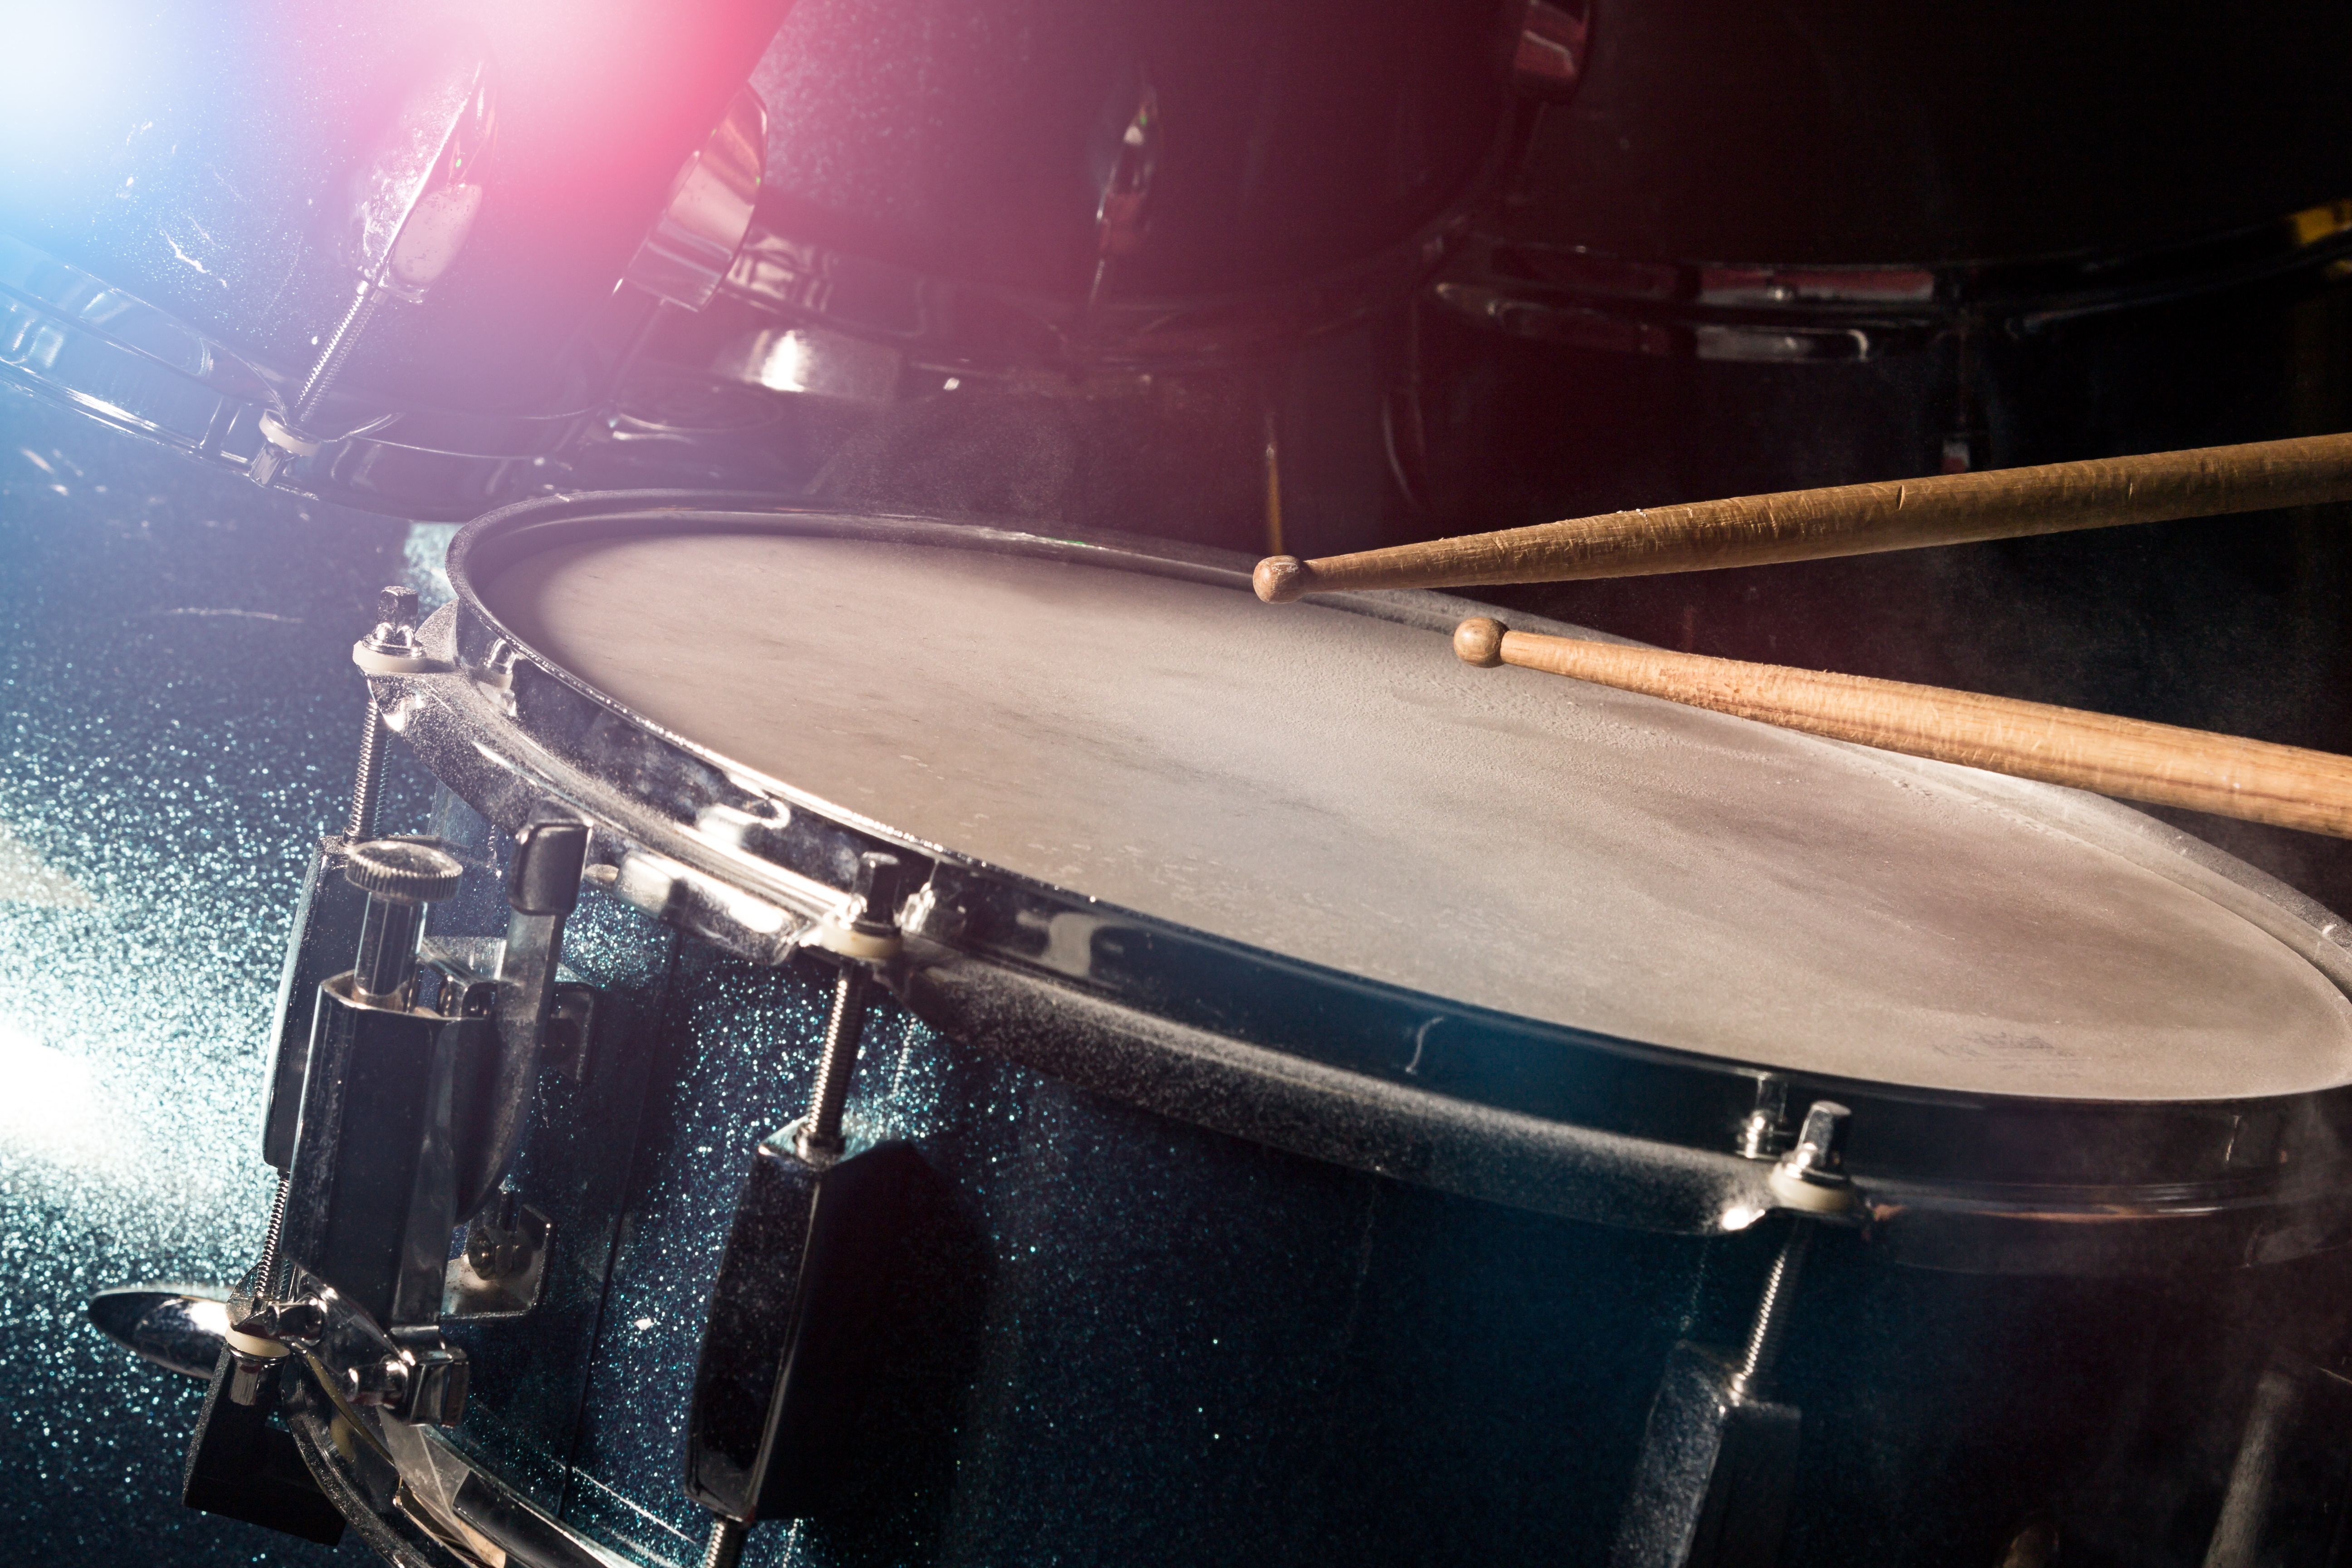 Close-up of drum stick hitting a drum. Florescent pink and blue lights can be seen in the background.